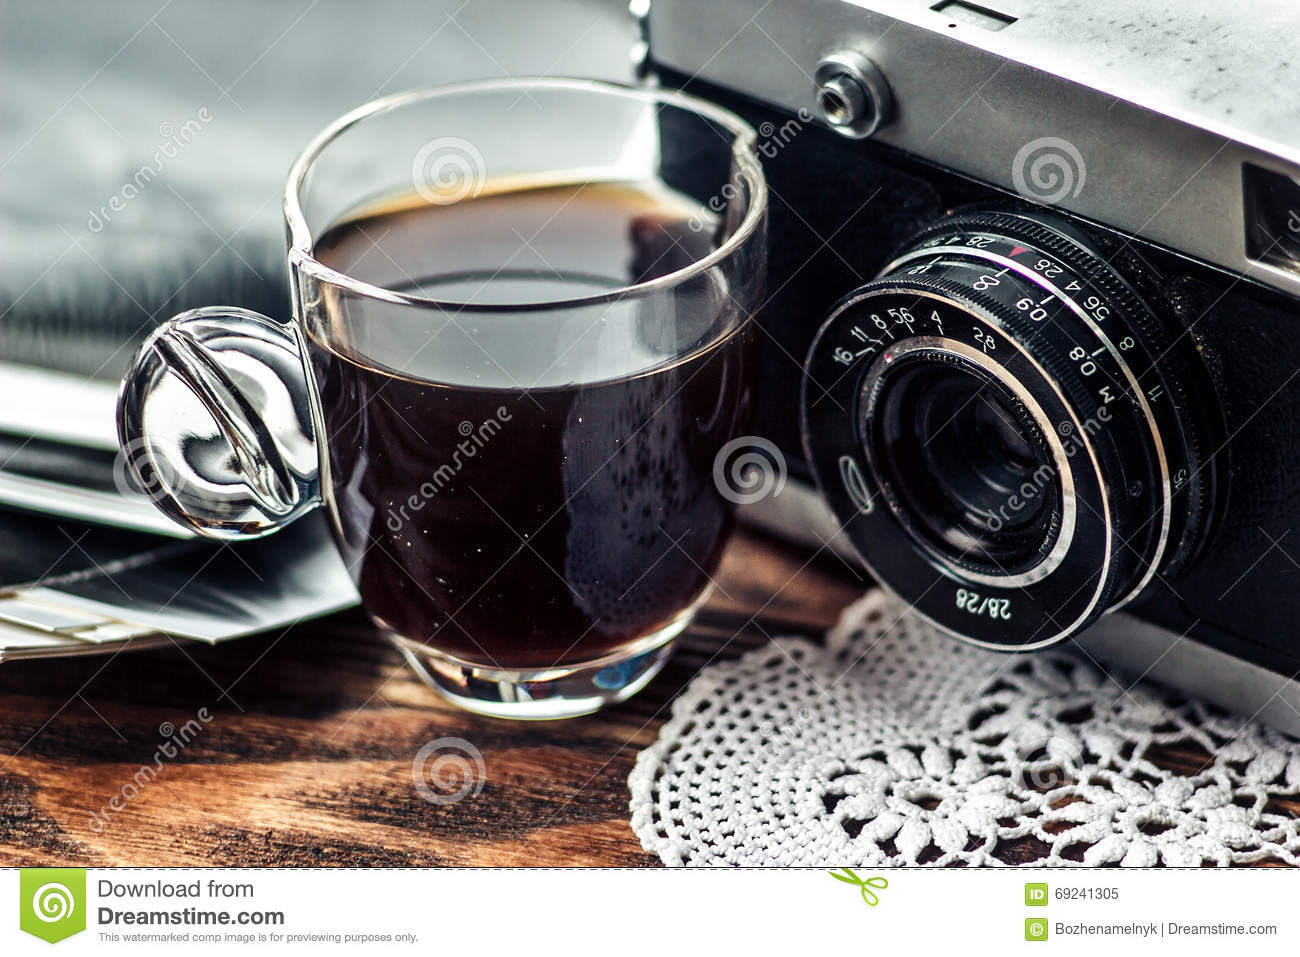 Close up photo of old, vintage camera lens with cap of coffee and black and white photos over wooden table.